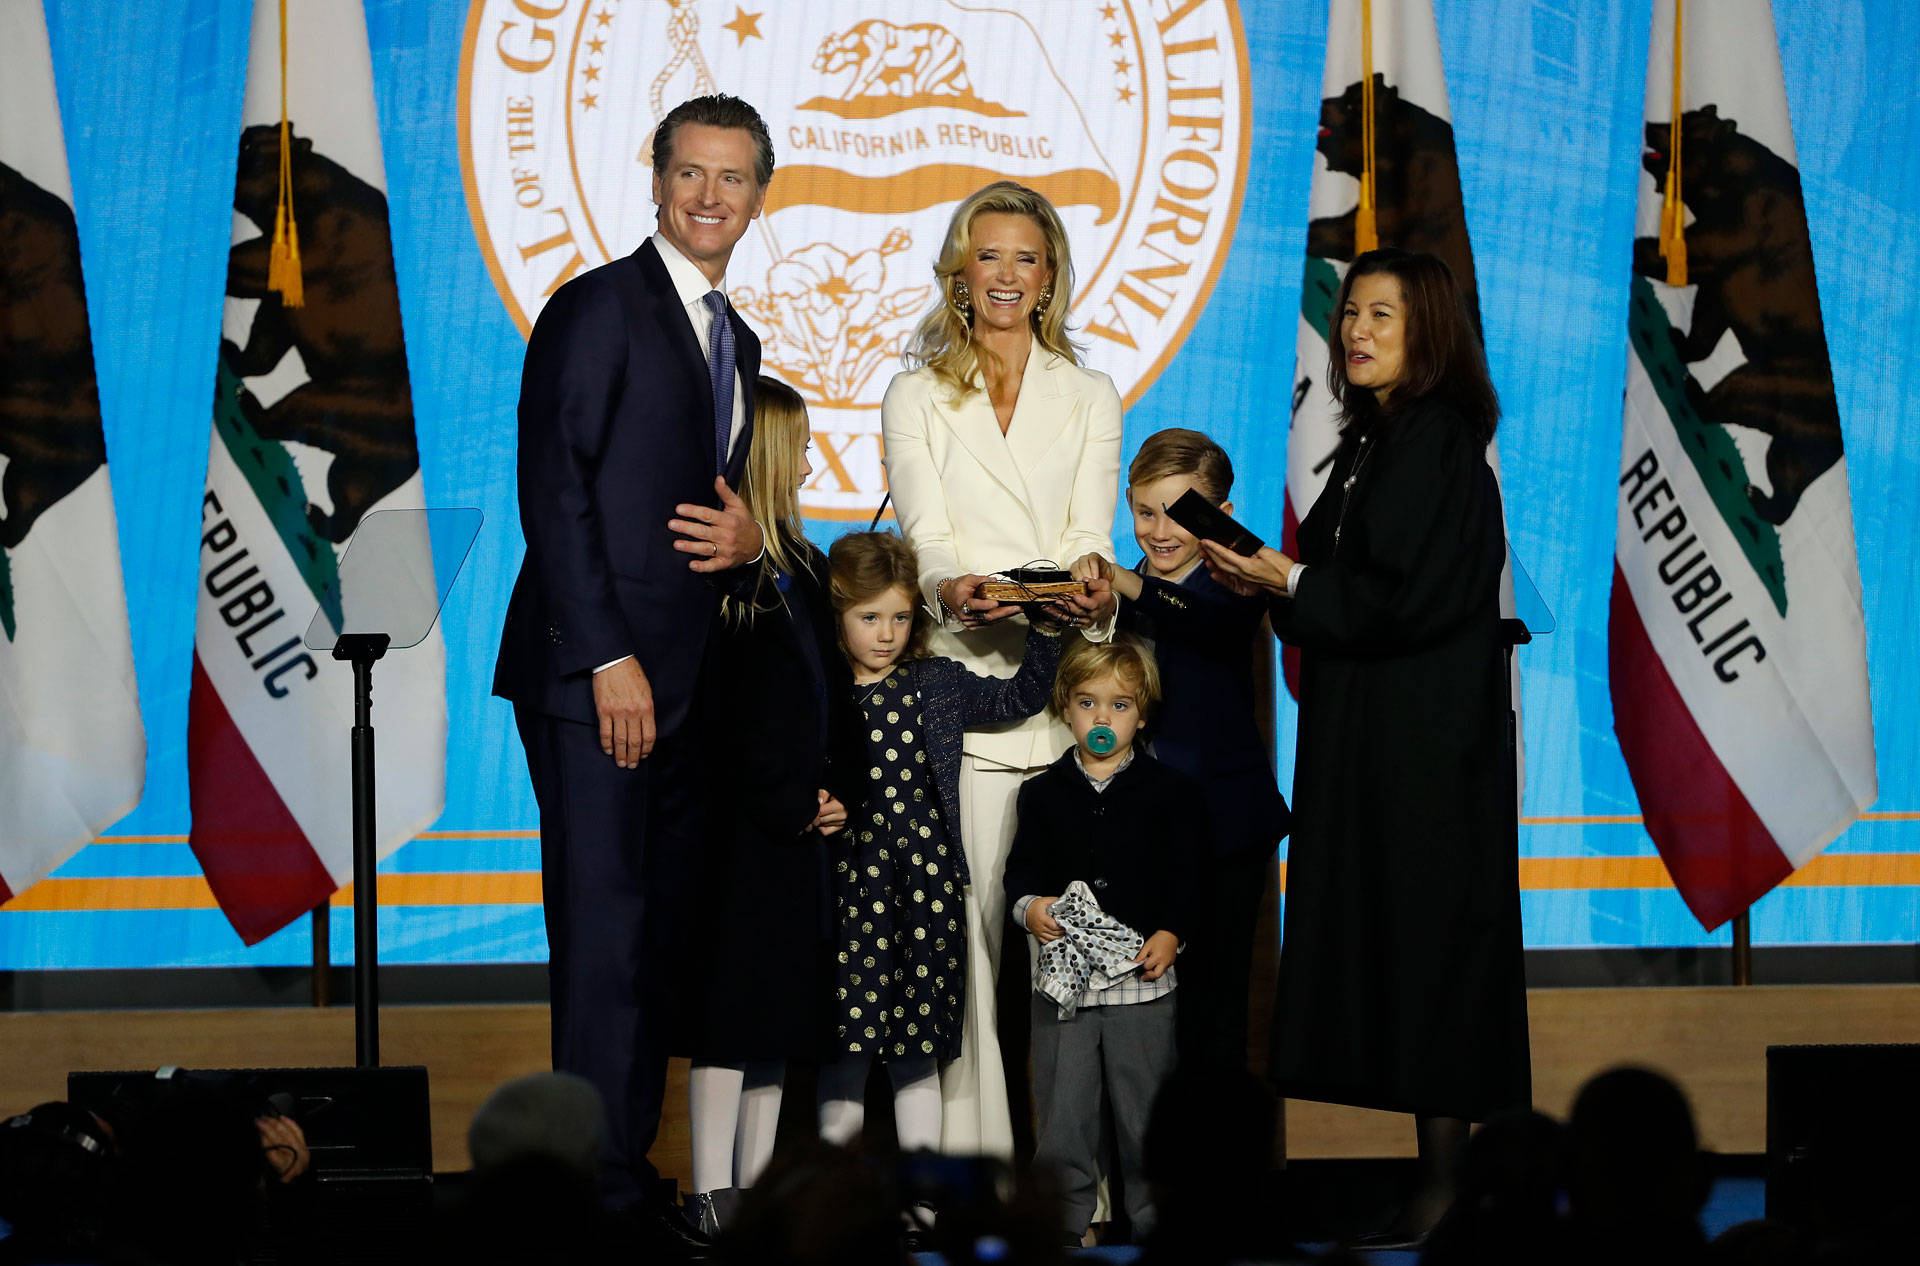 Gavin Newsom is sworn in as governor of California by California Chief Justice Tani Cantil-Sakauye (R), as Newsom's wife, Jennifer Siebel Newsom (C), watches on Jan. 7, 2019, in Sacramento. Stephen Lam/Getty Images